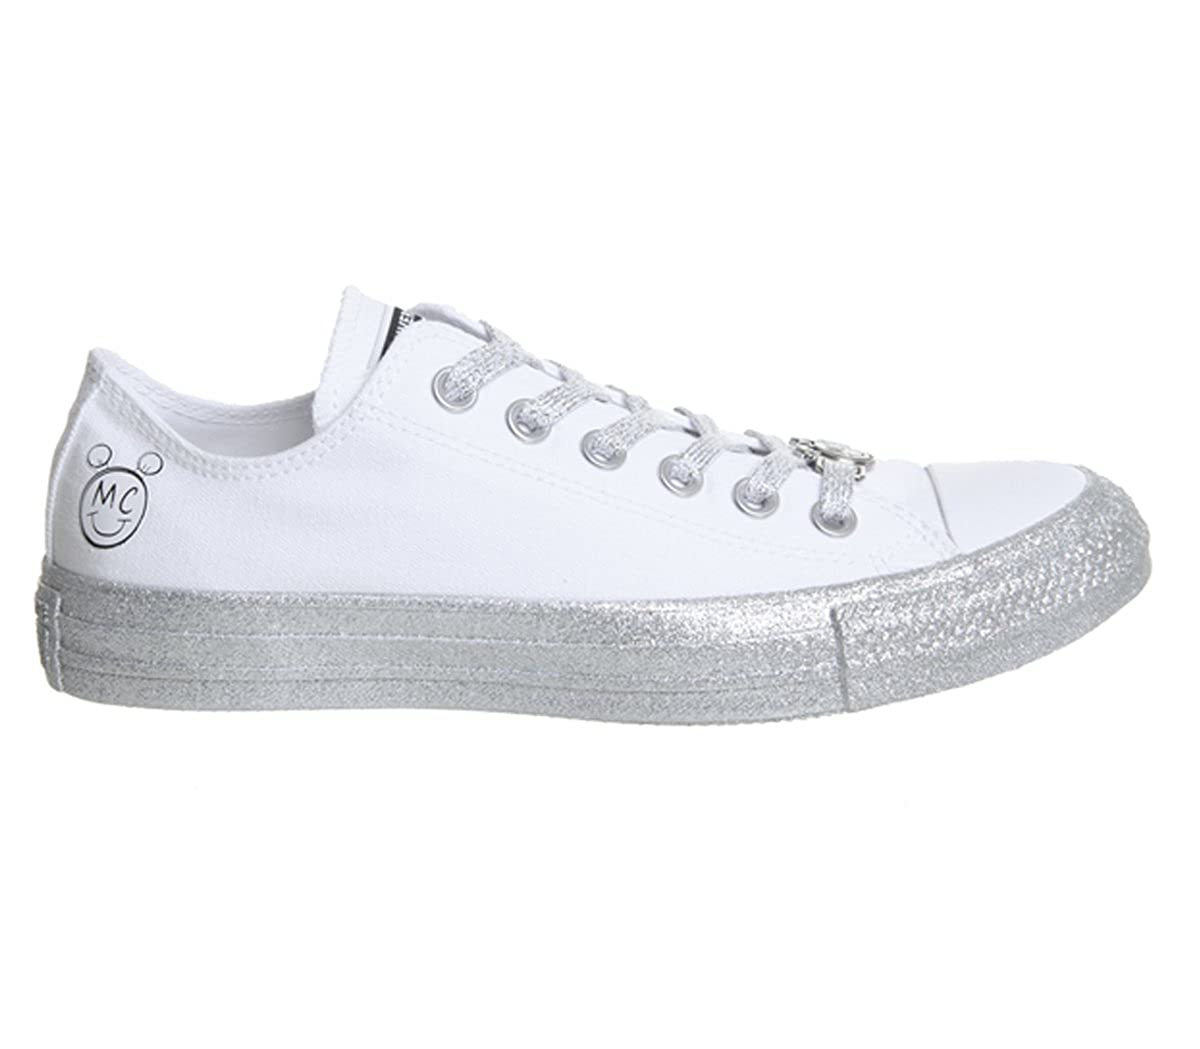 Miley Cyrus x Converse Chuck Taylor All Star Release Date